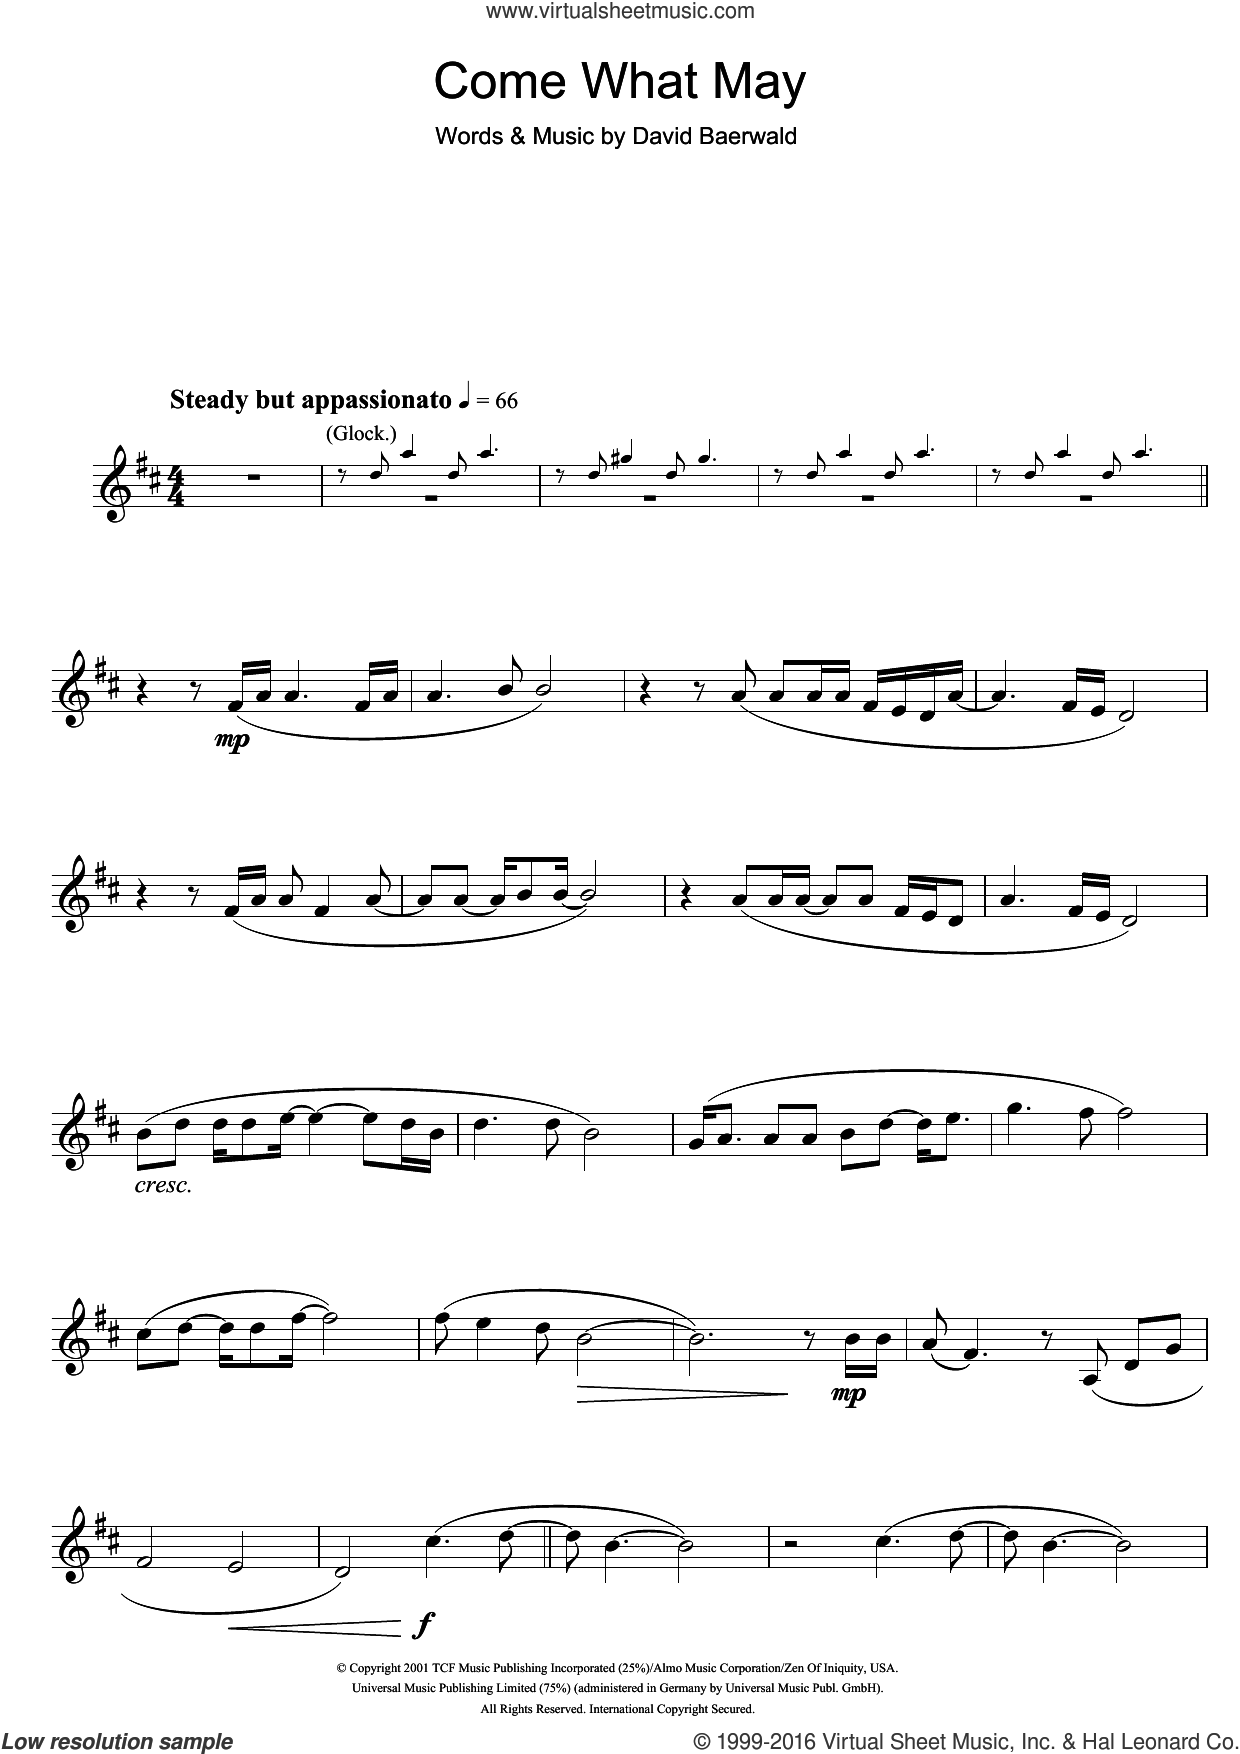 Come What May (from Moulin Rouge) sheet music for clarinet solo by David Baerwald, Ewan McGregor and Nicole Kidman, intermediate skill level